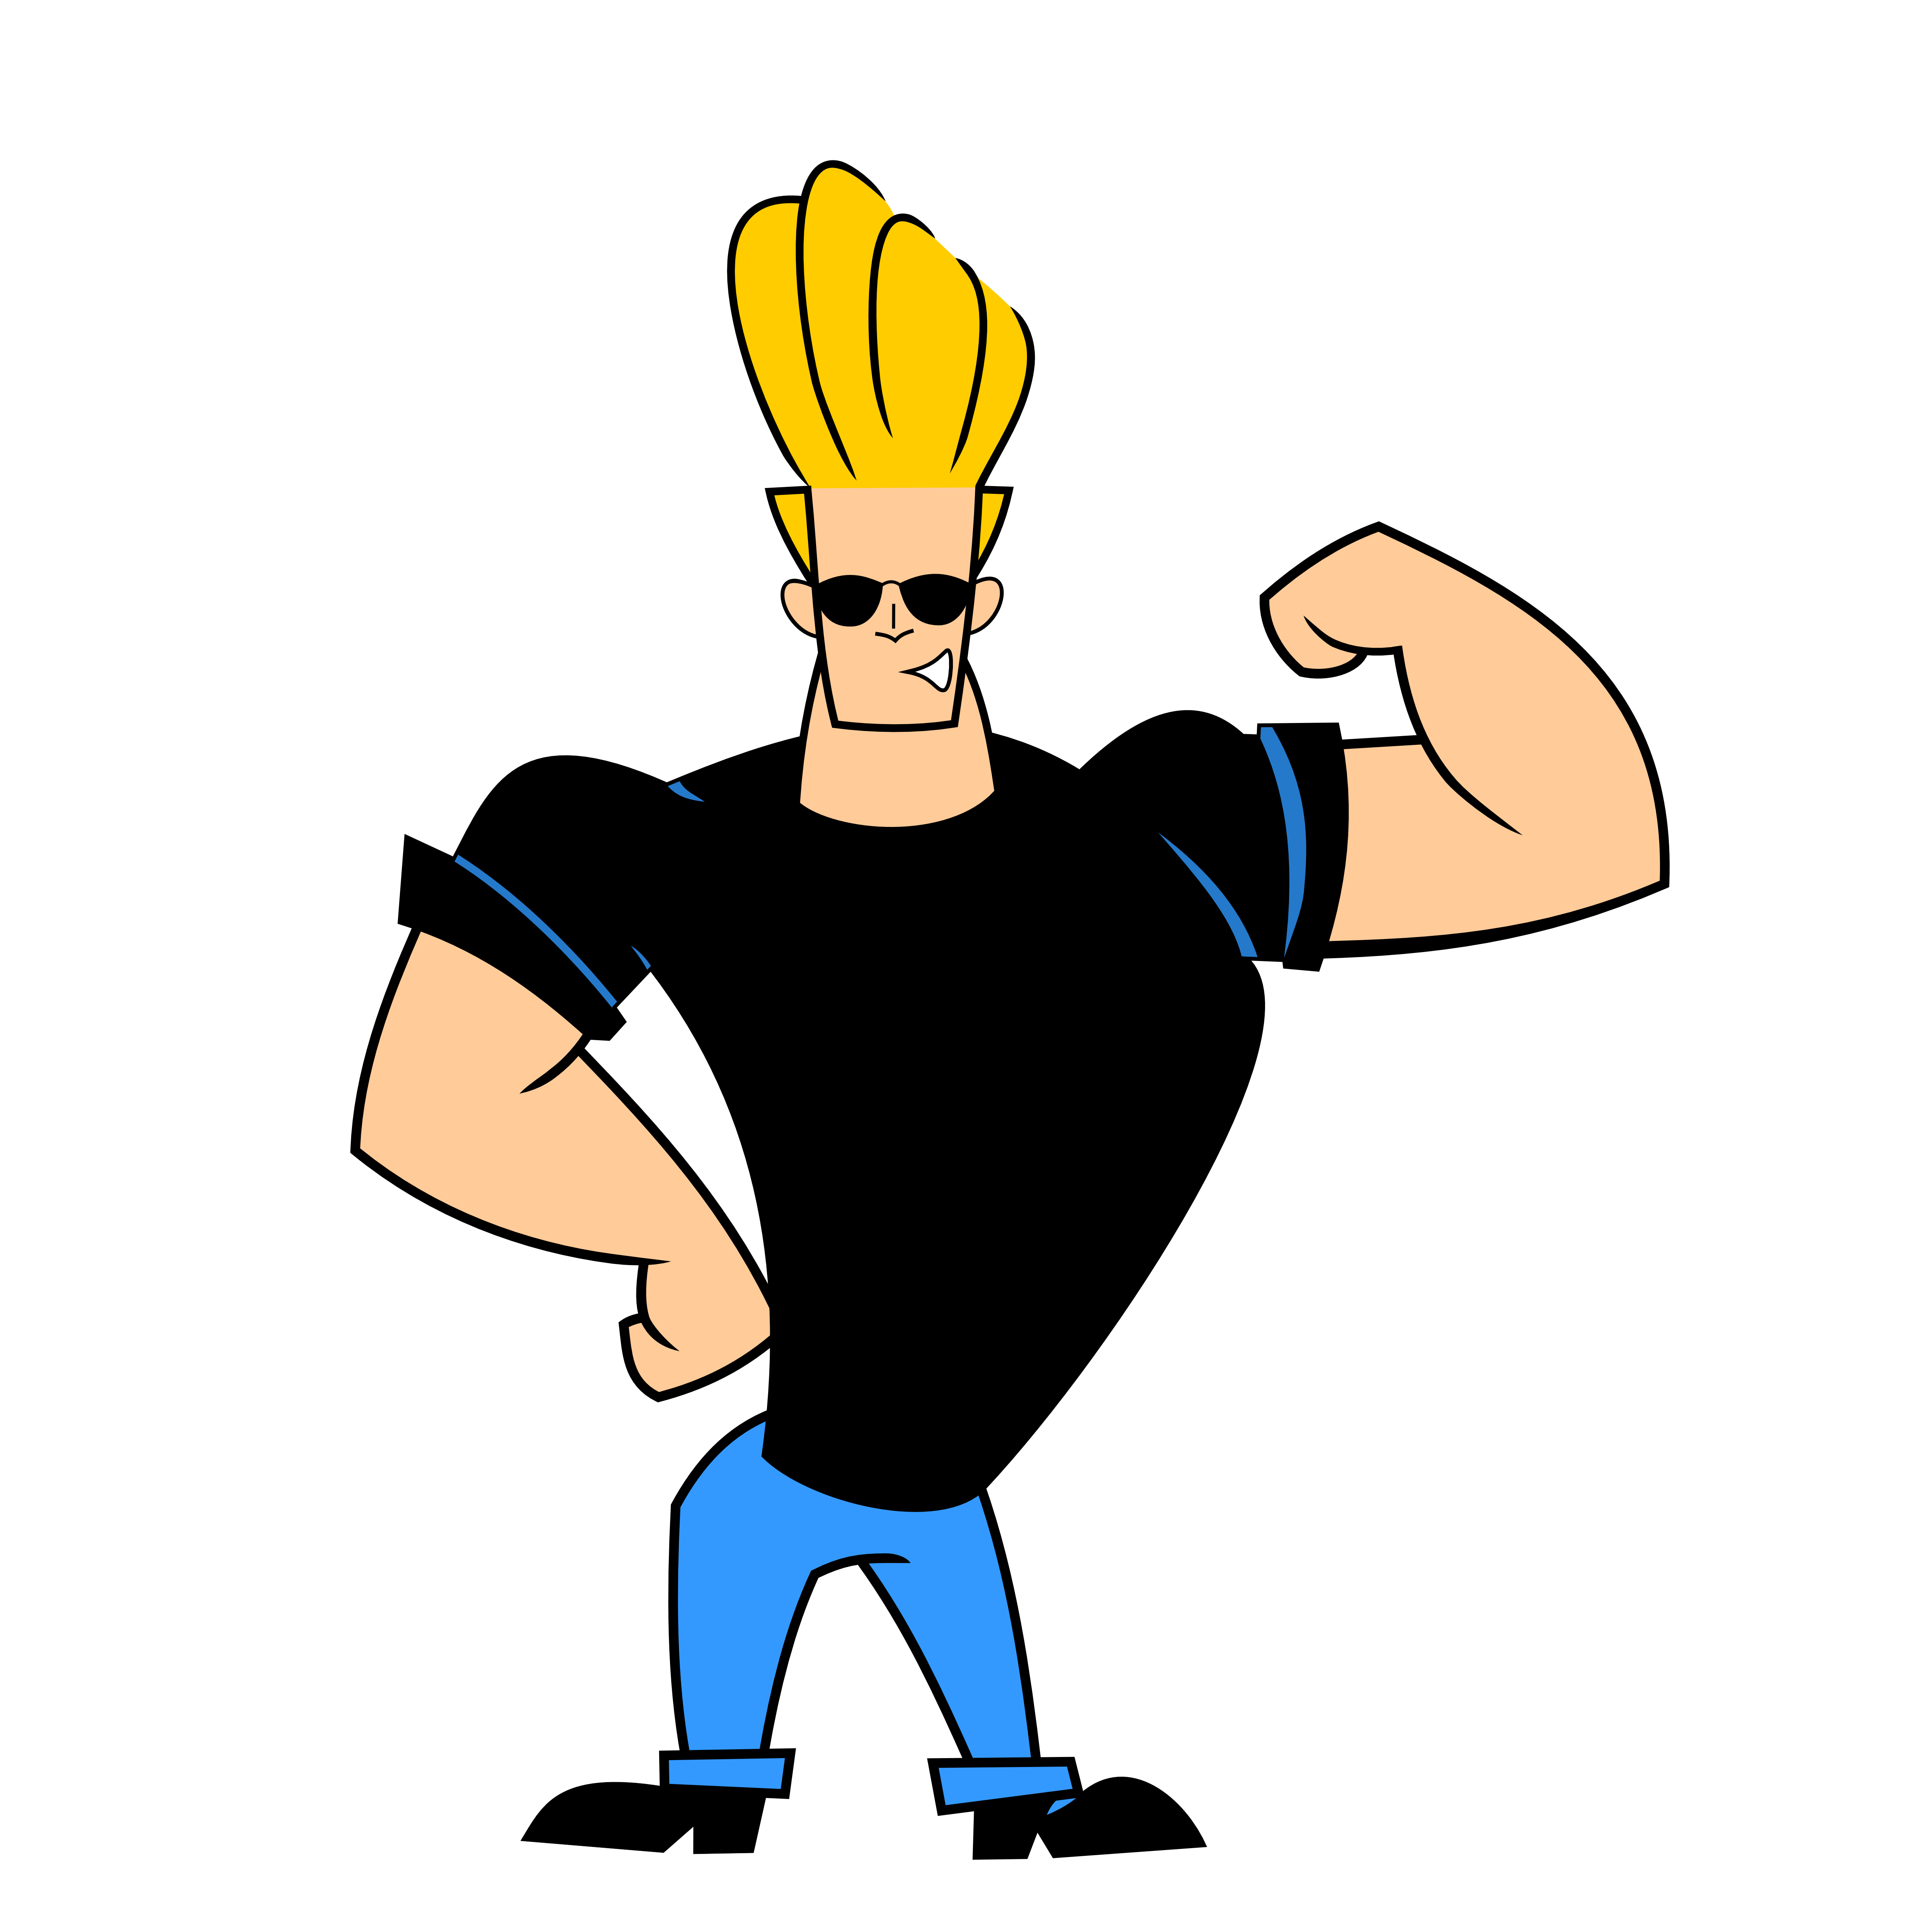 clip free download Yes clipart bravo. Johnny google search ura